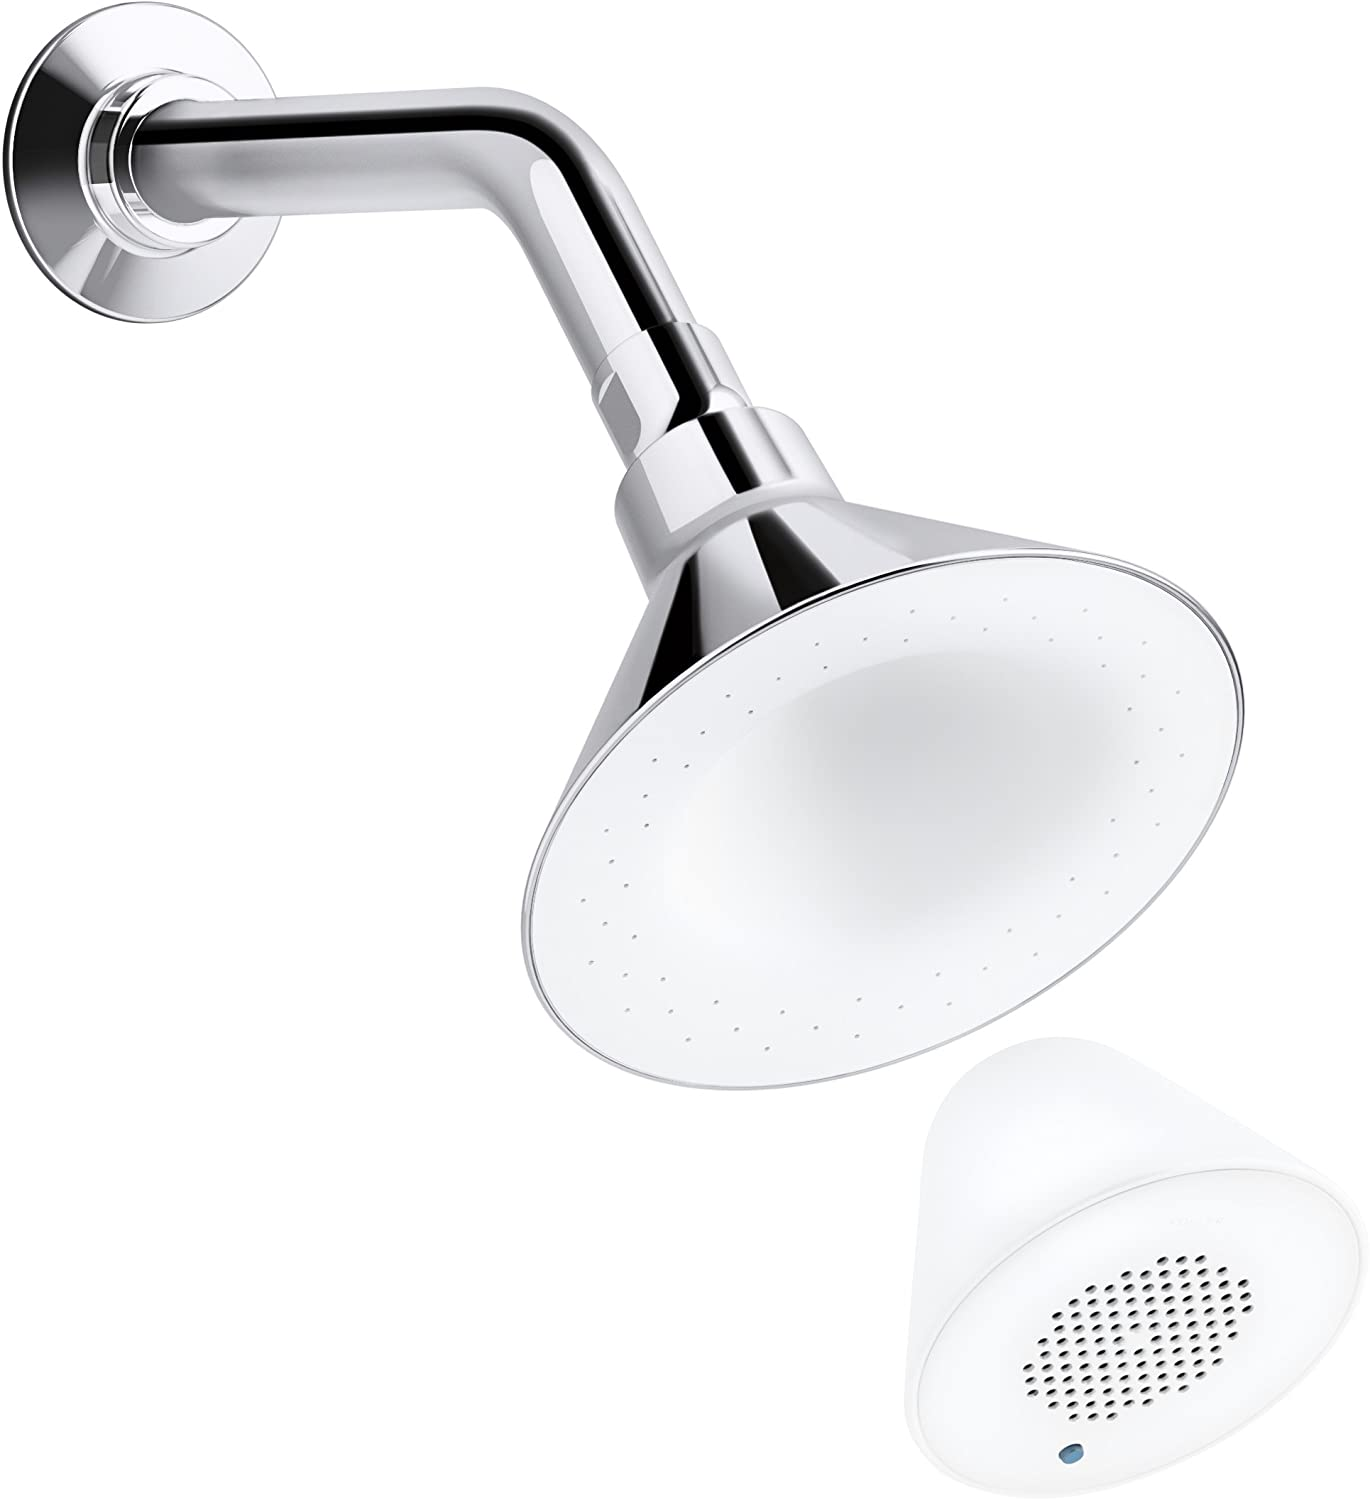 KOHLER K-9245-E-0 2.0-GPM Moxie Showerhead and Wireless Speaker, White